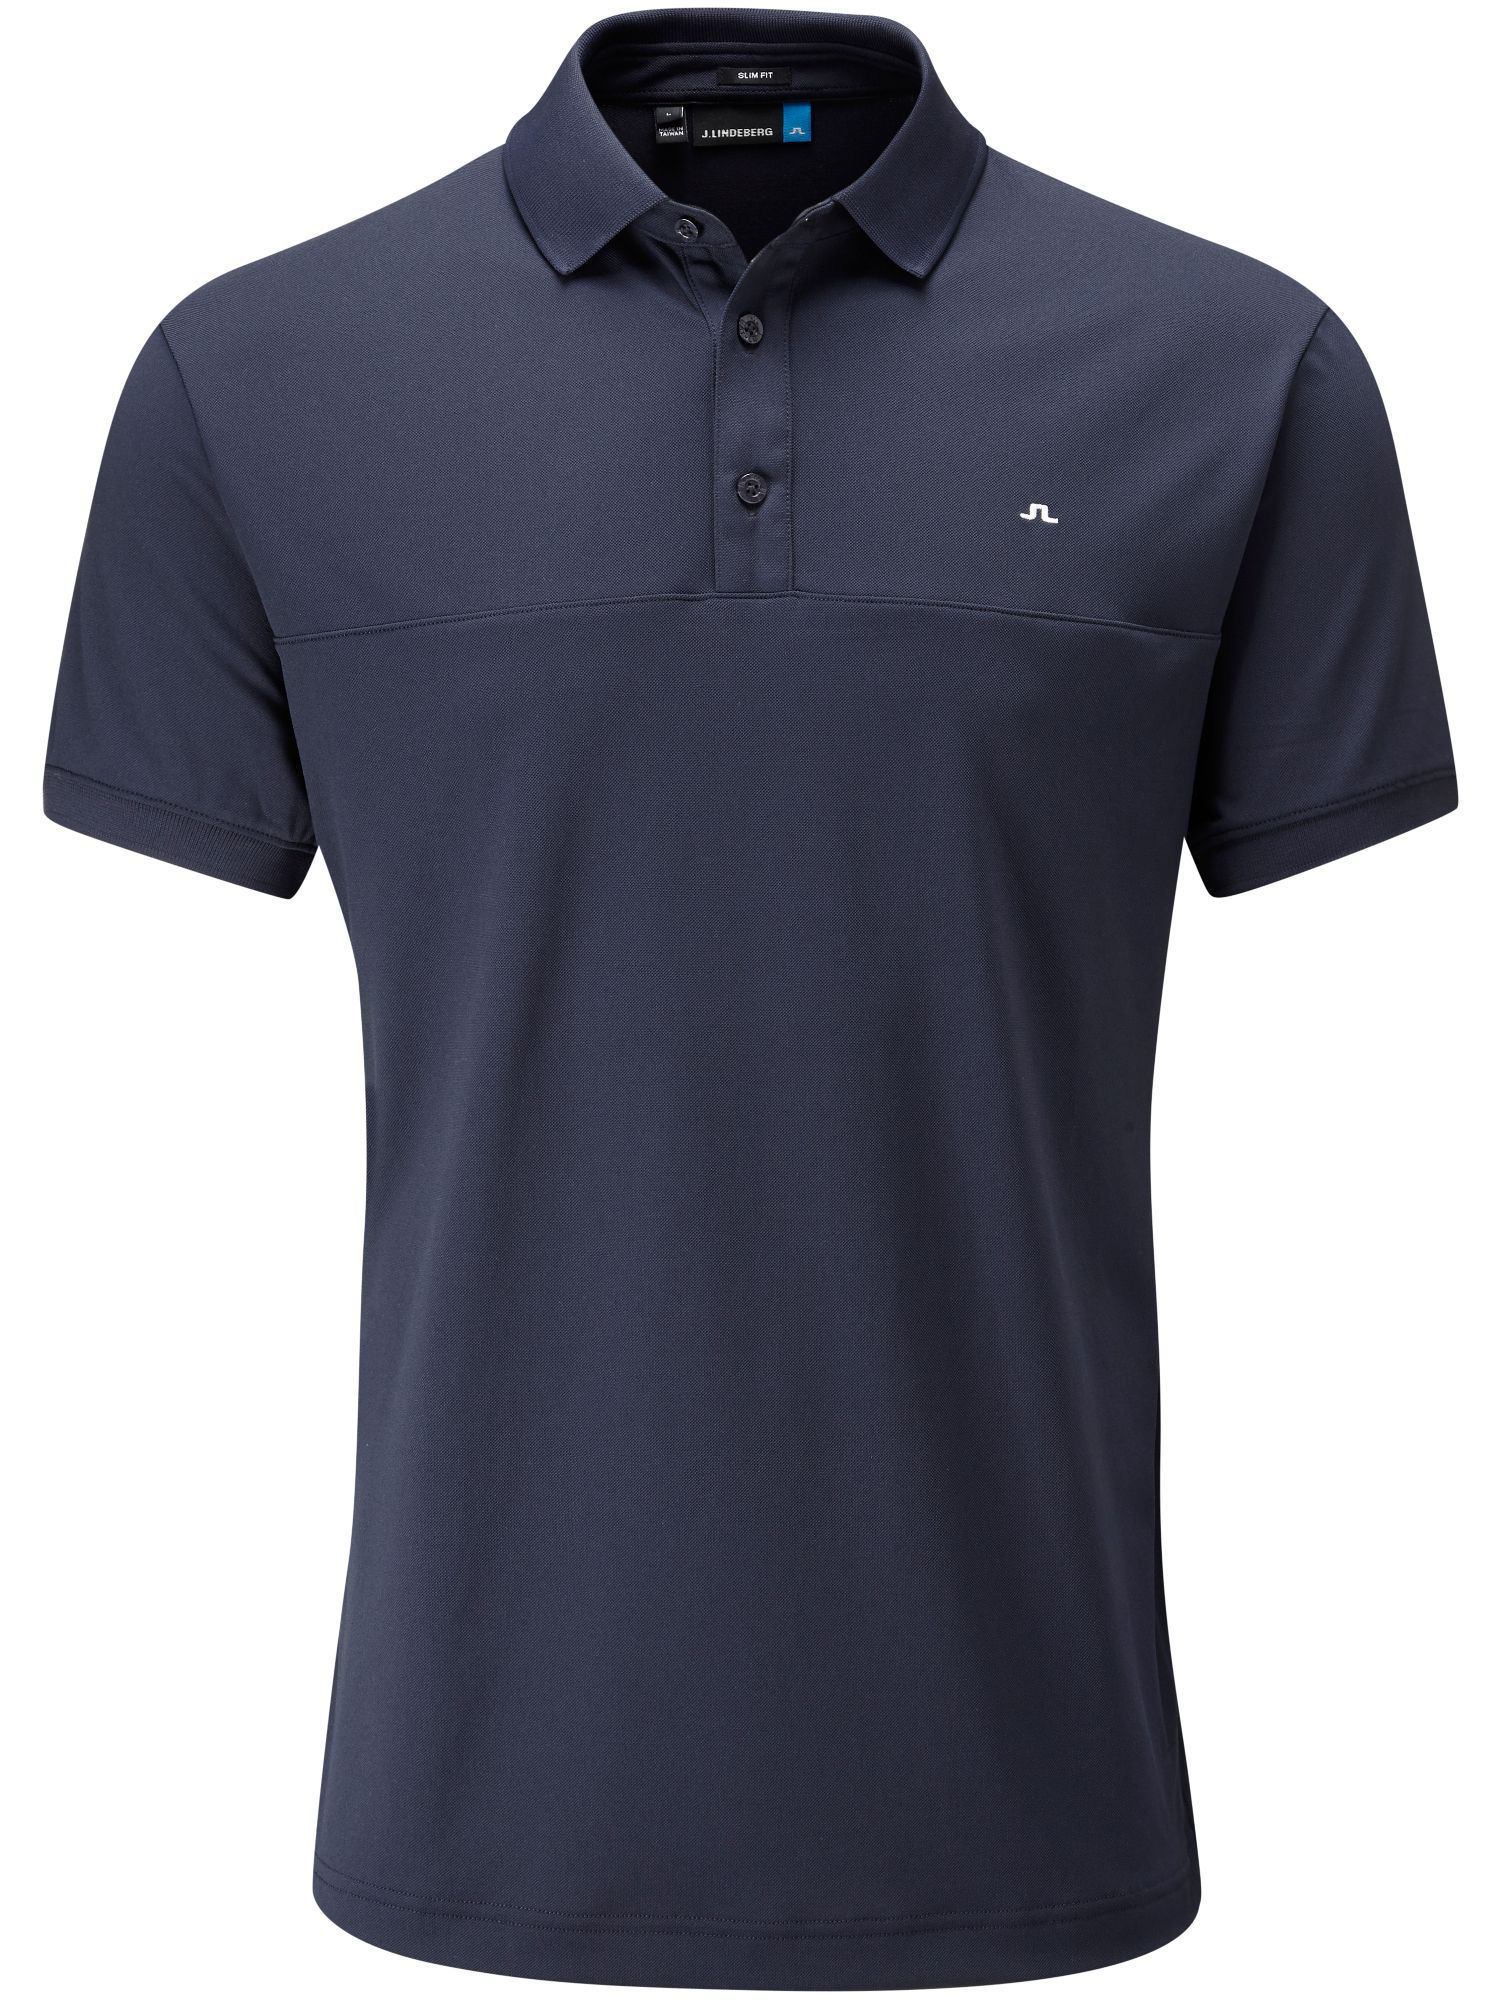 Men's J Lindeberg Golf Johan TX Slim Fit Polo, Blue